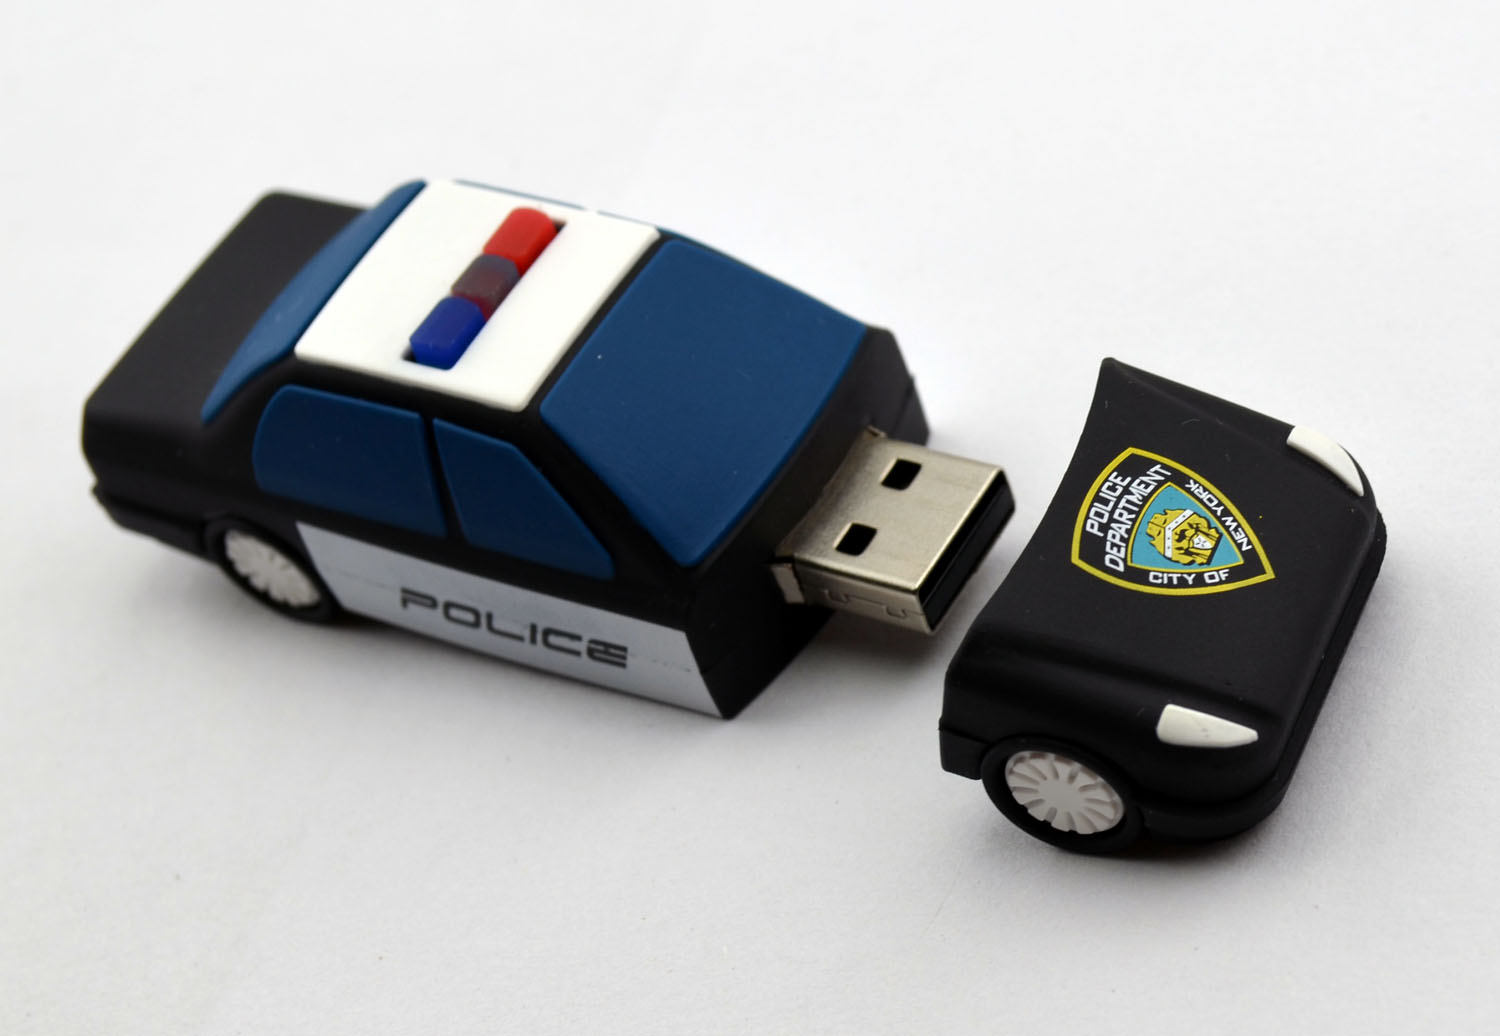 Photo: The most creative flash drive for your computer 90